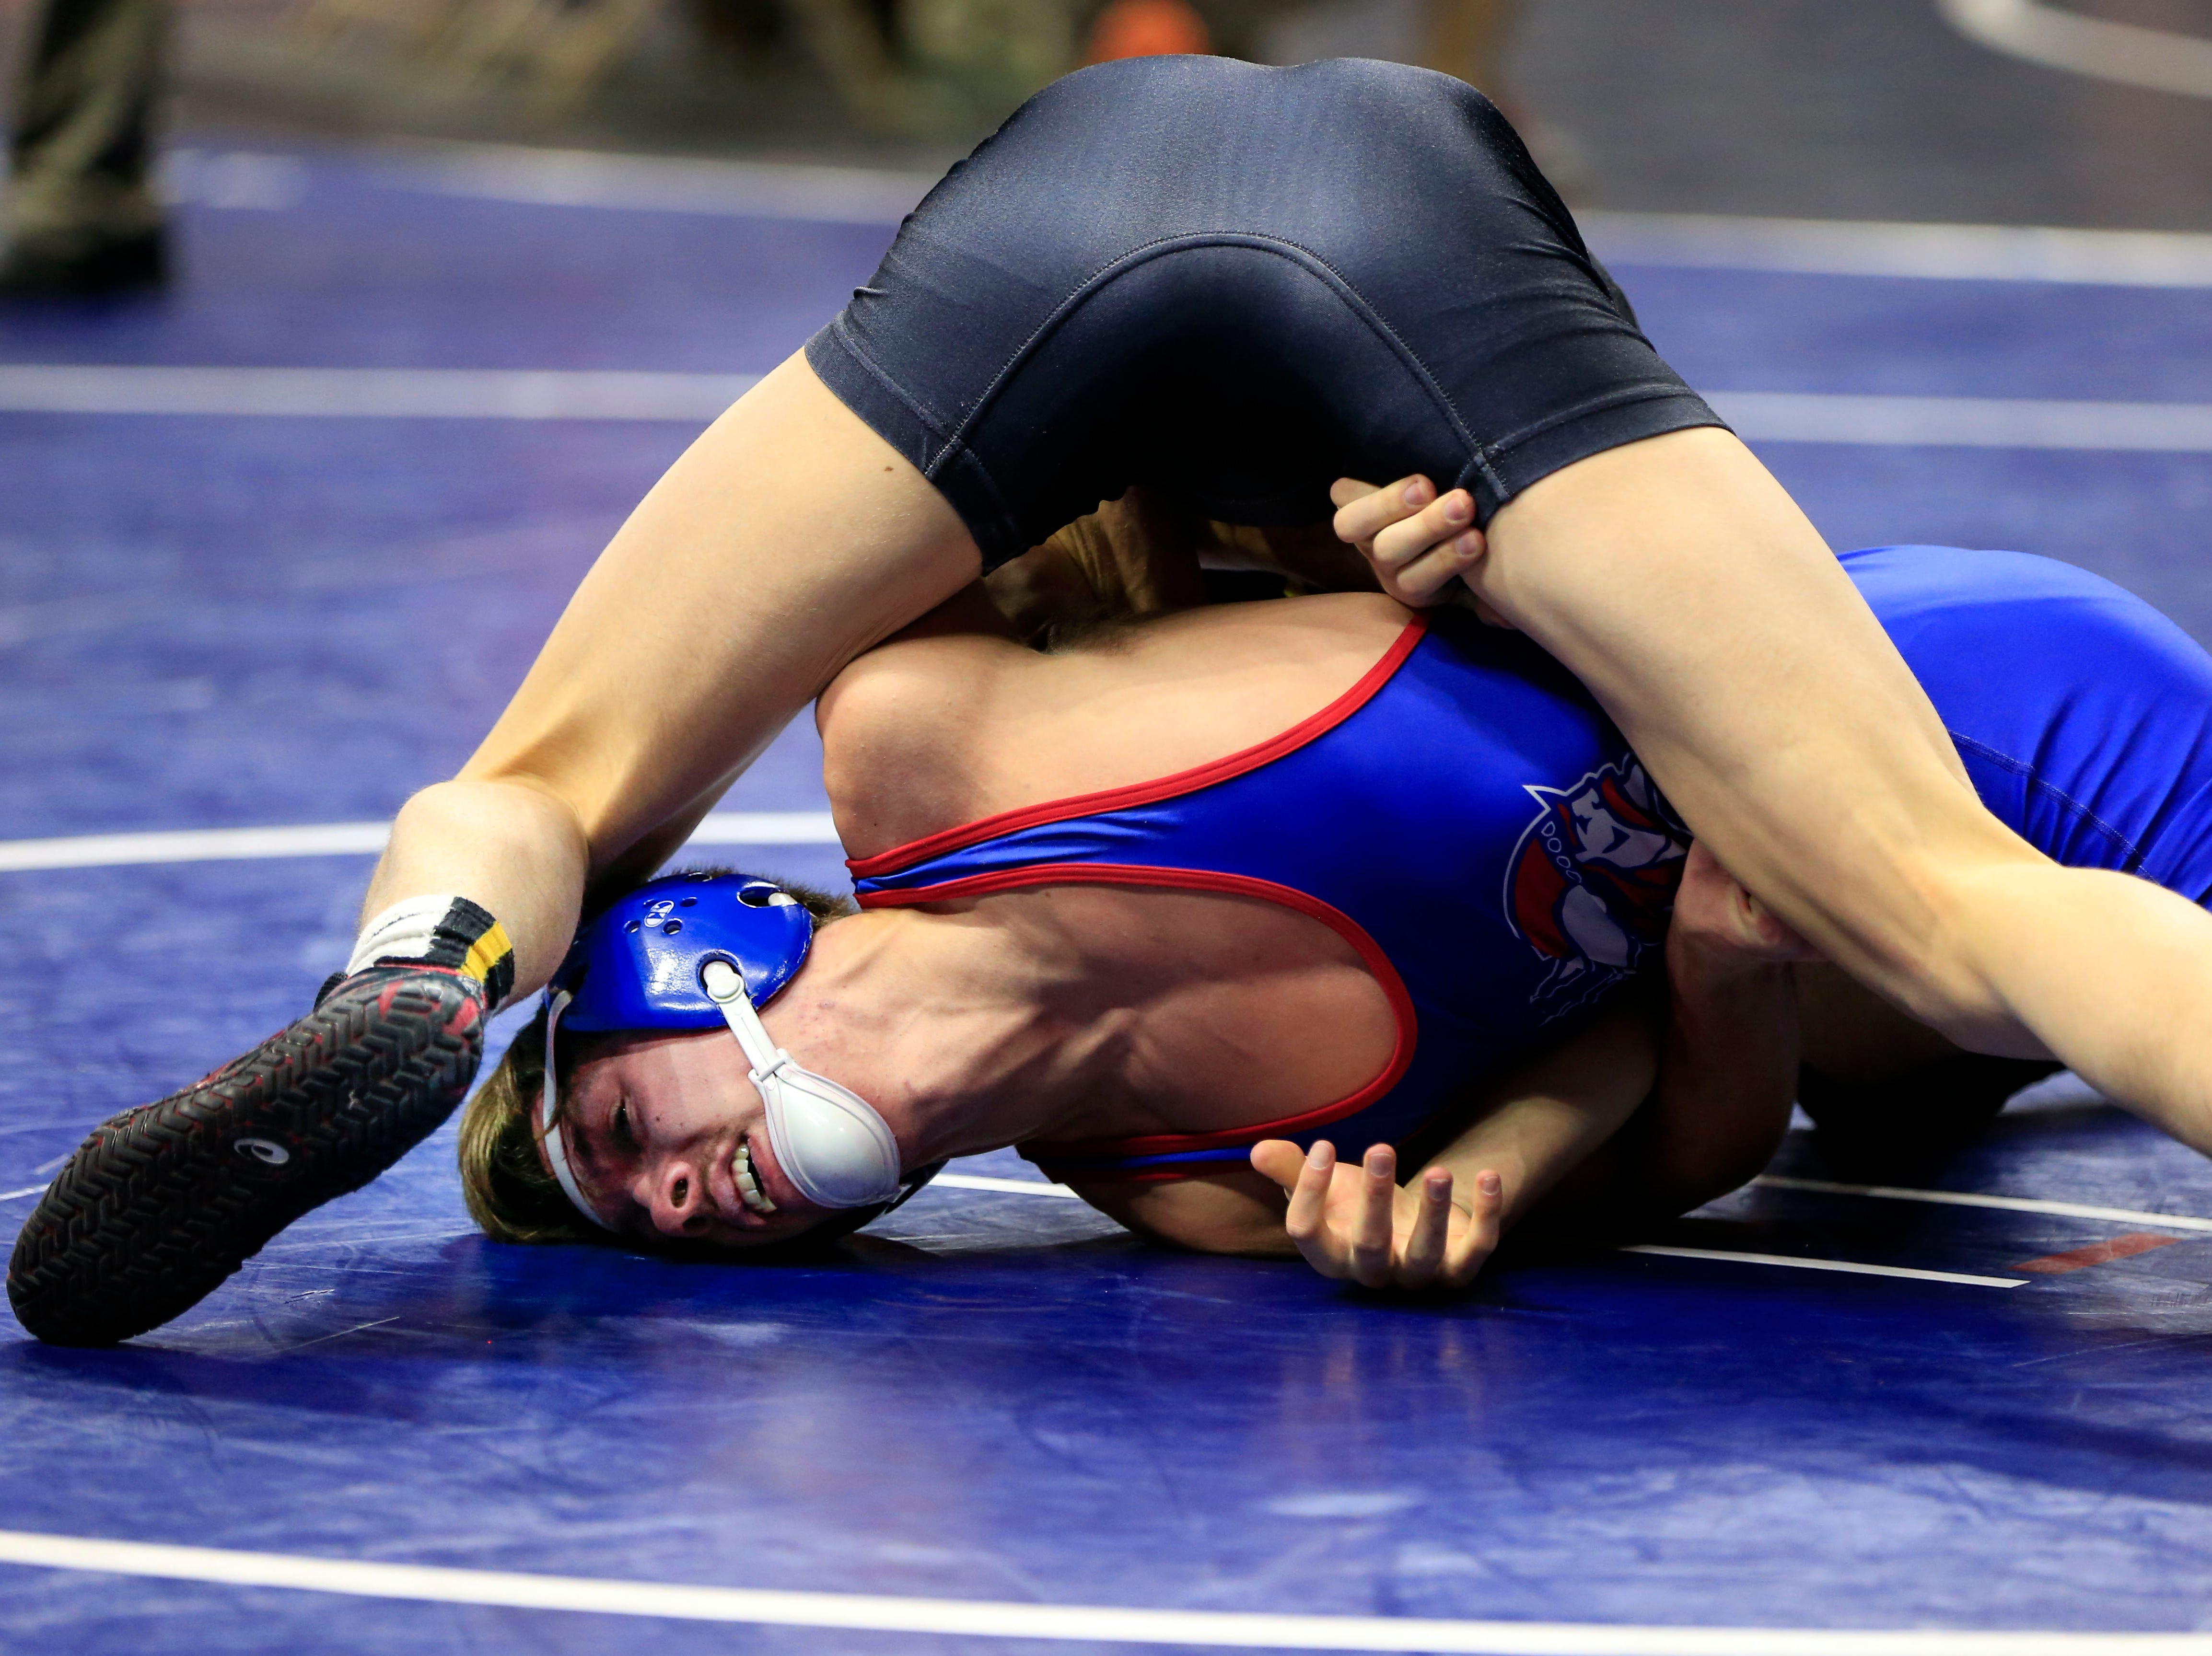 Eric Faught of Clear Lake defeats Jackson Rolfs of Decorah during a 132 Lb 2A quarterfinal match at the state wrestling tournament Friday, Feb. 15, 2019.